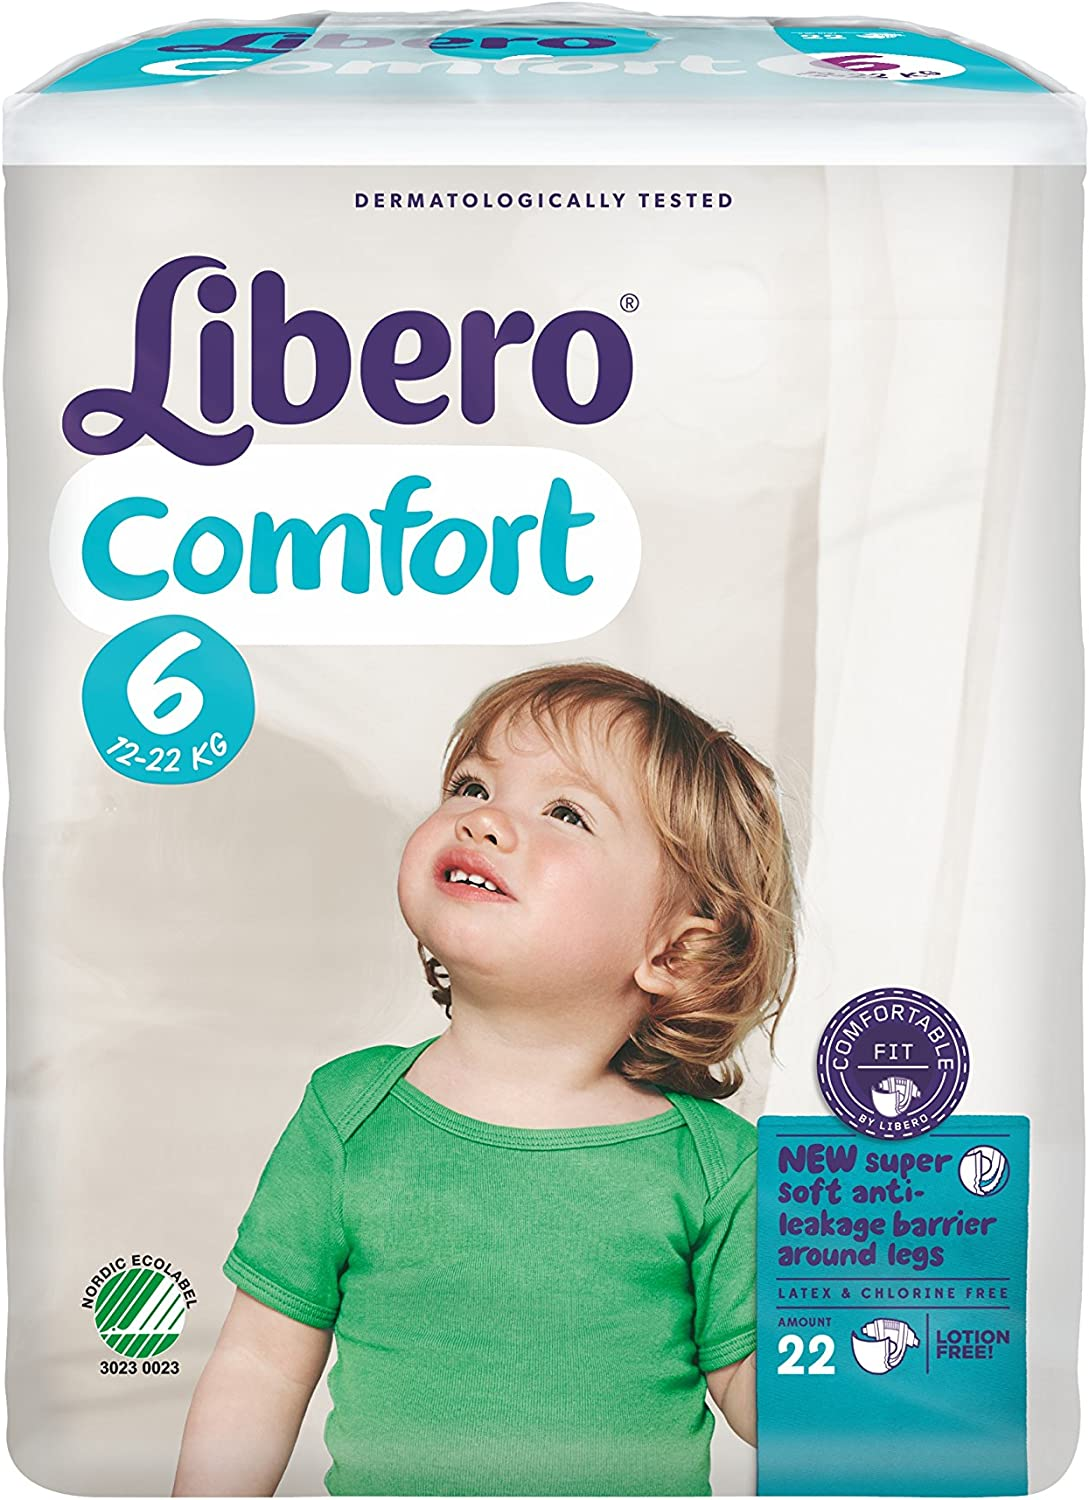 Libero Comfort 6 Baby Nappies 8 Packs of 22 13-22kg